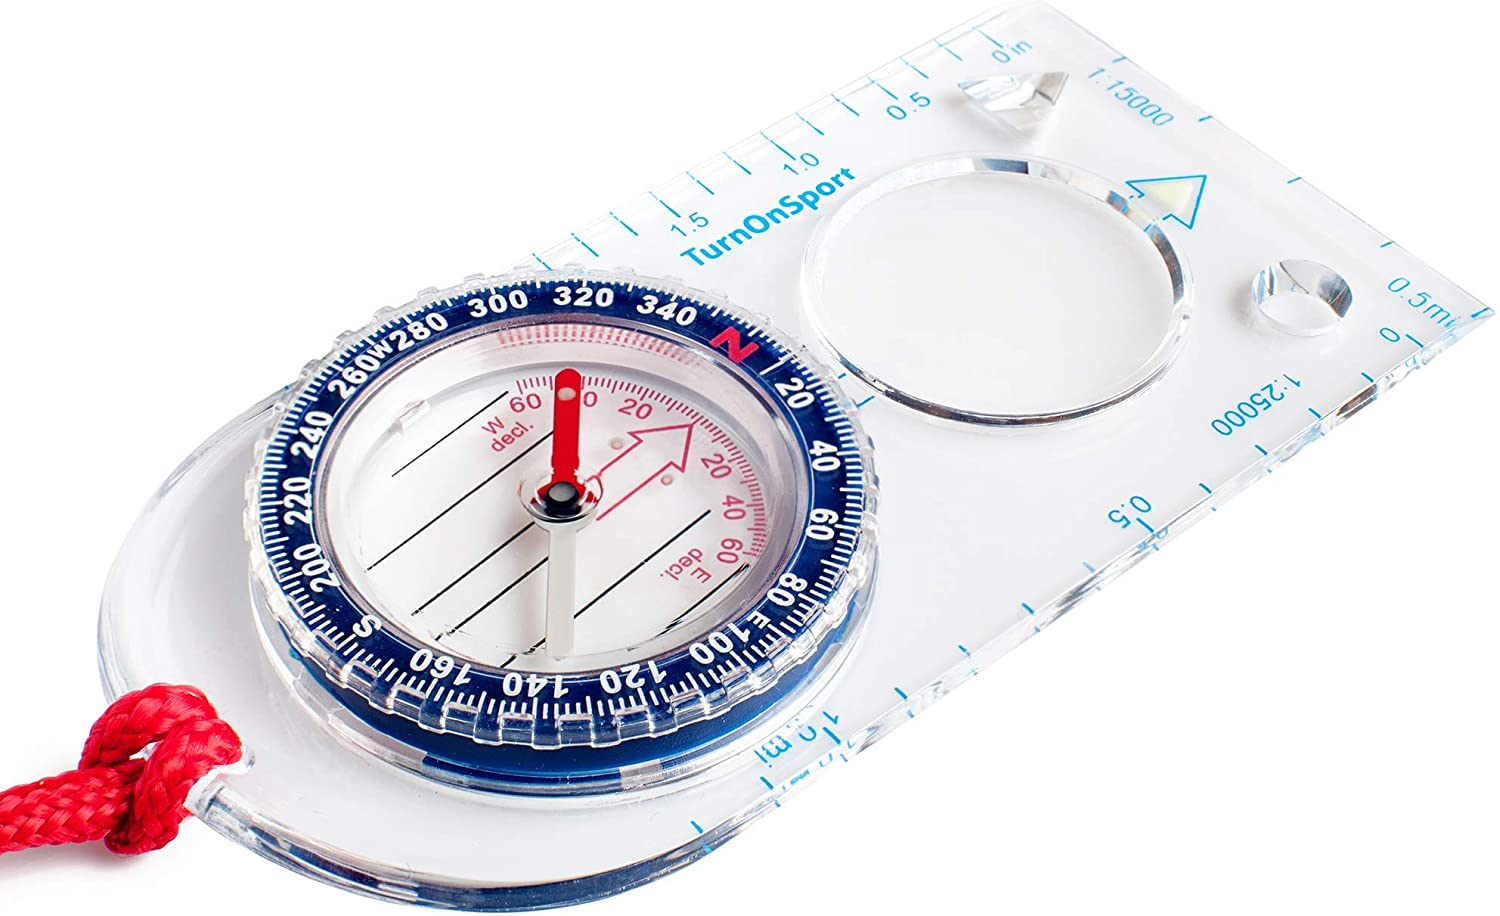 Orienteering Compass - Hiking Backpacking Compass - Advanced Scout Compass Camping and Navigation - Boy Scout Compass Kids - Professional Field Compass for Map Reading - Best Survival Gifts